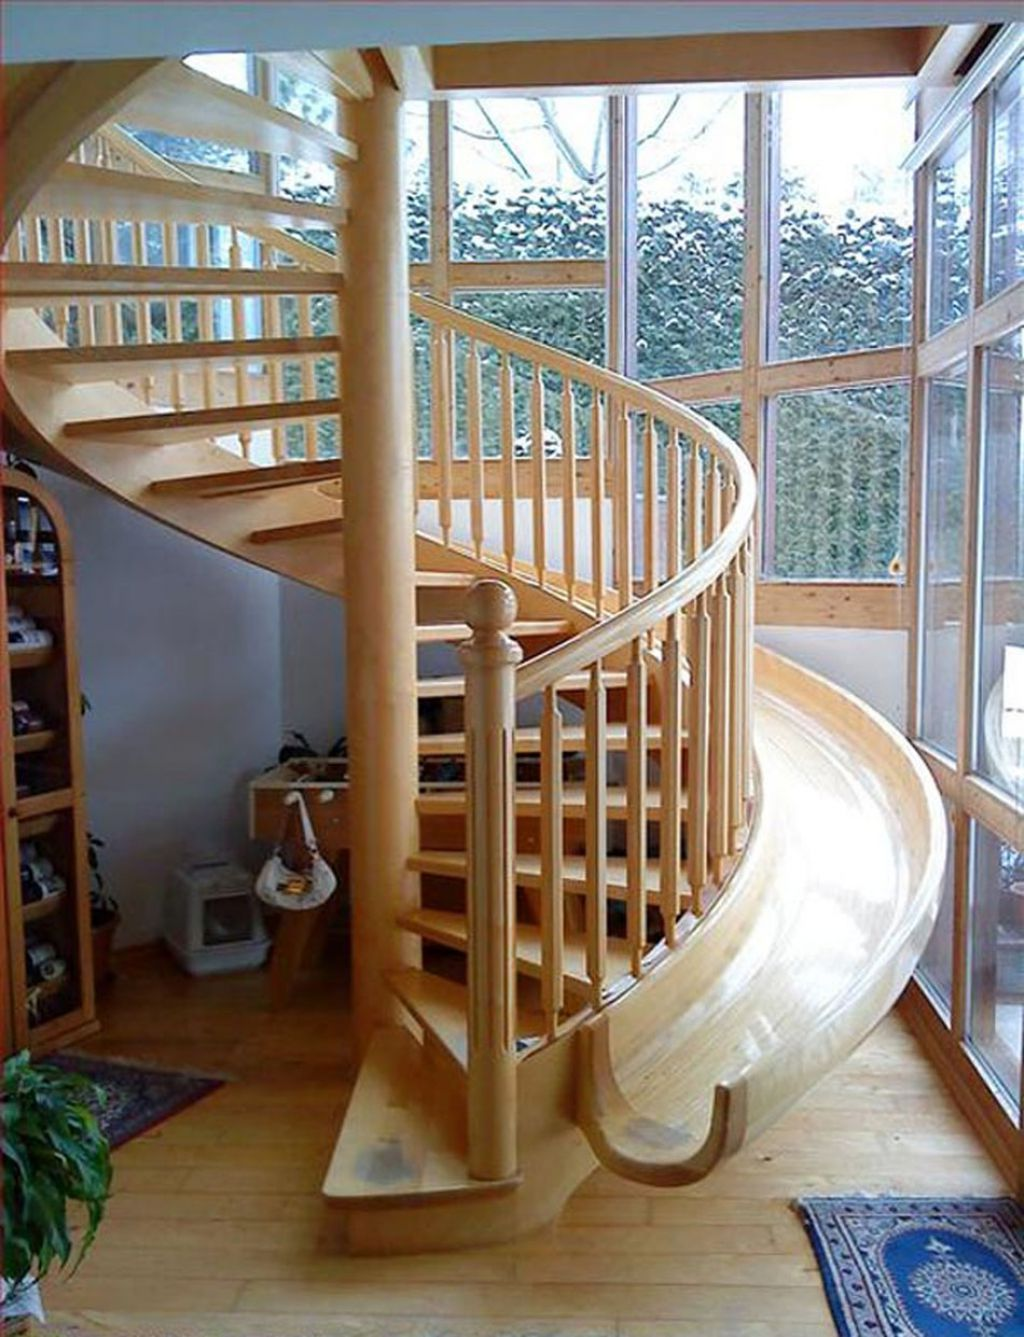 Spiral Indoor Stairs Make A Bold Design Statement, Save Space And Are  Inexpensive. Spiral Indoor Stairs Can Be Made From Varied Materials